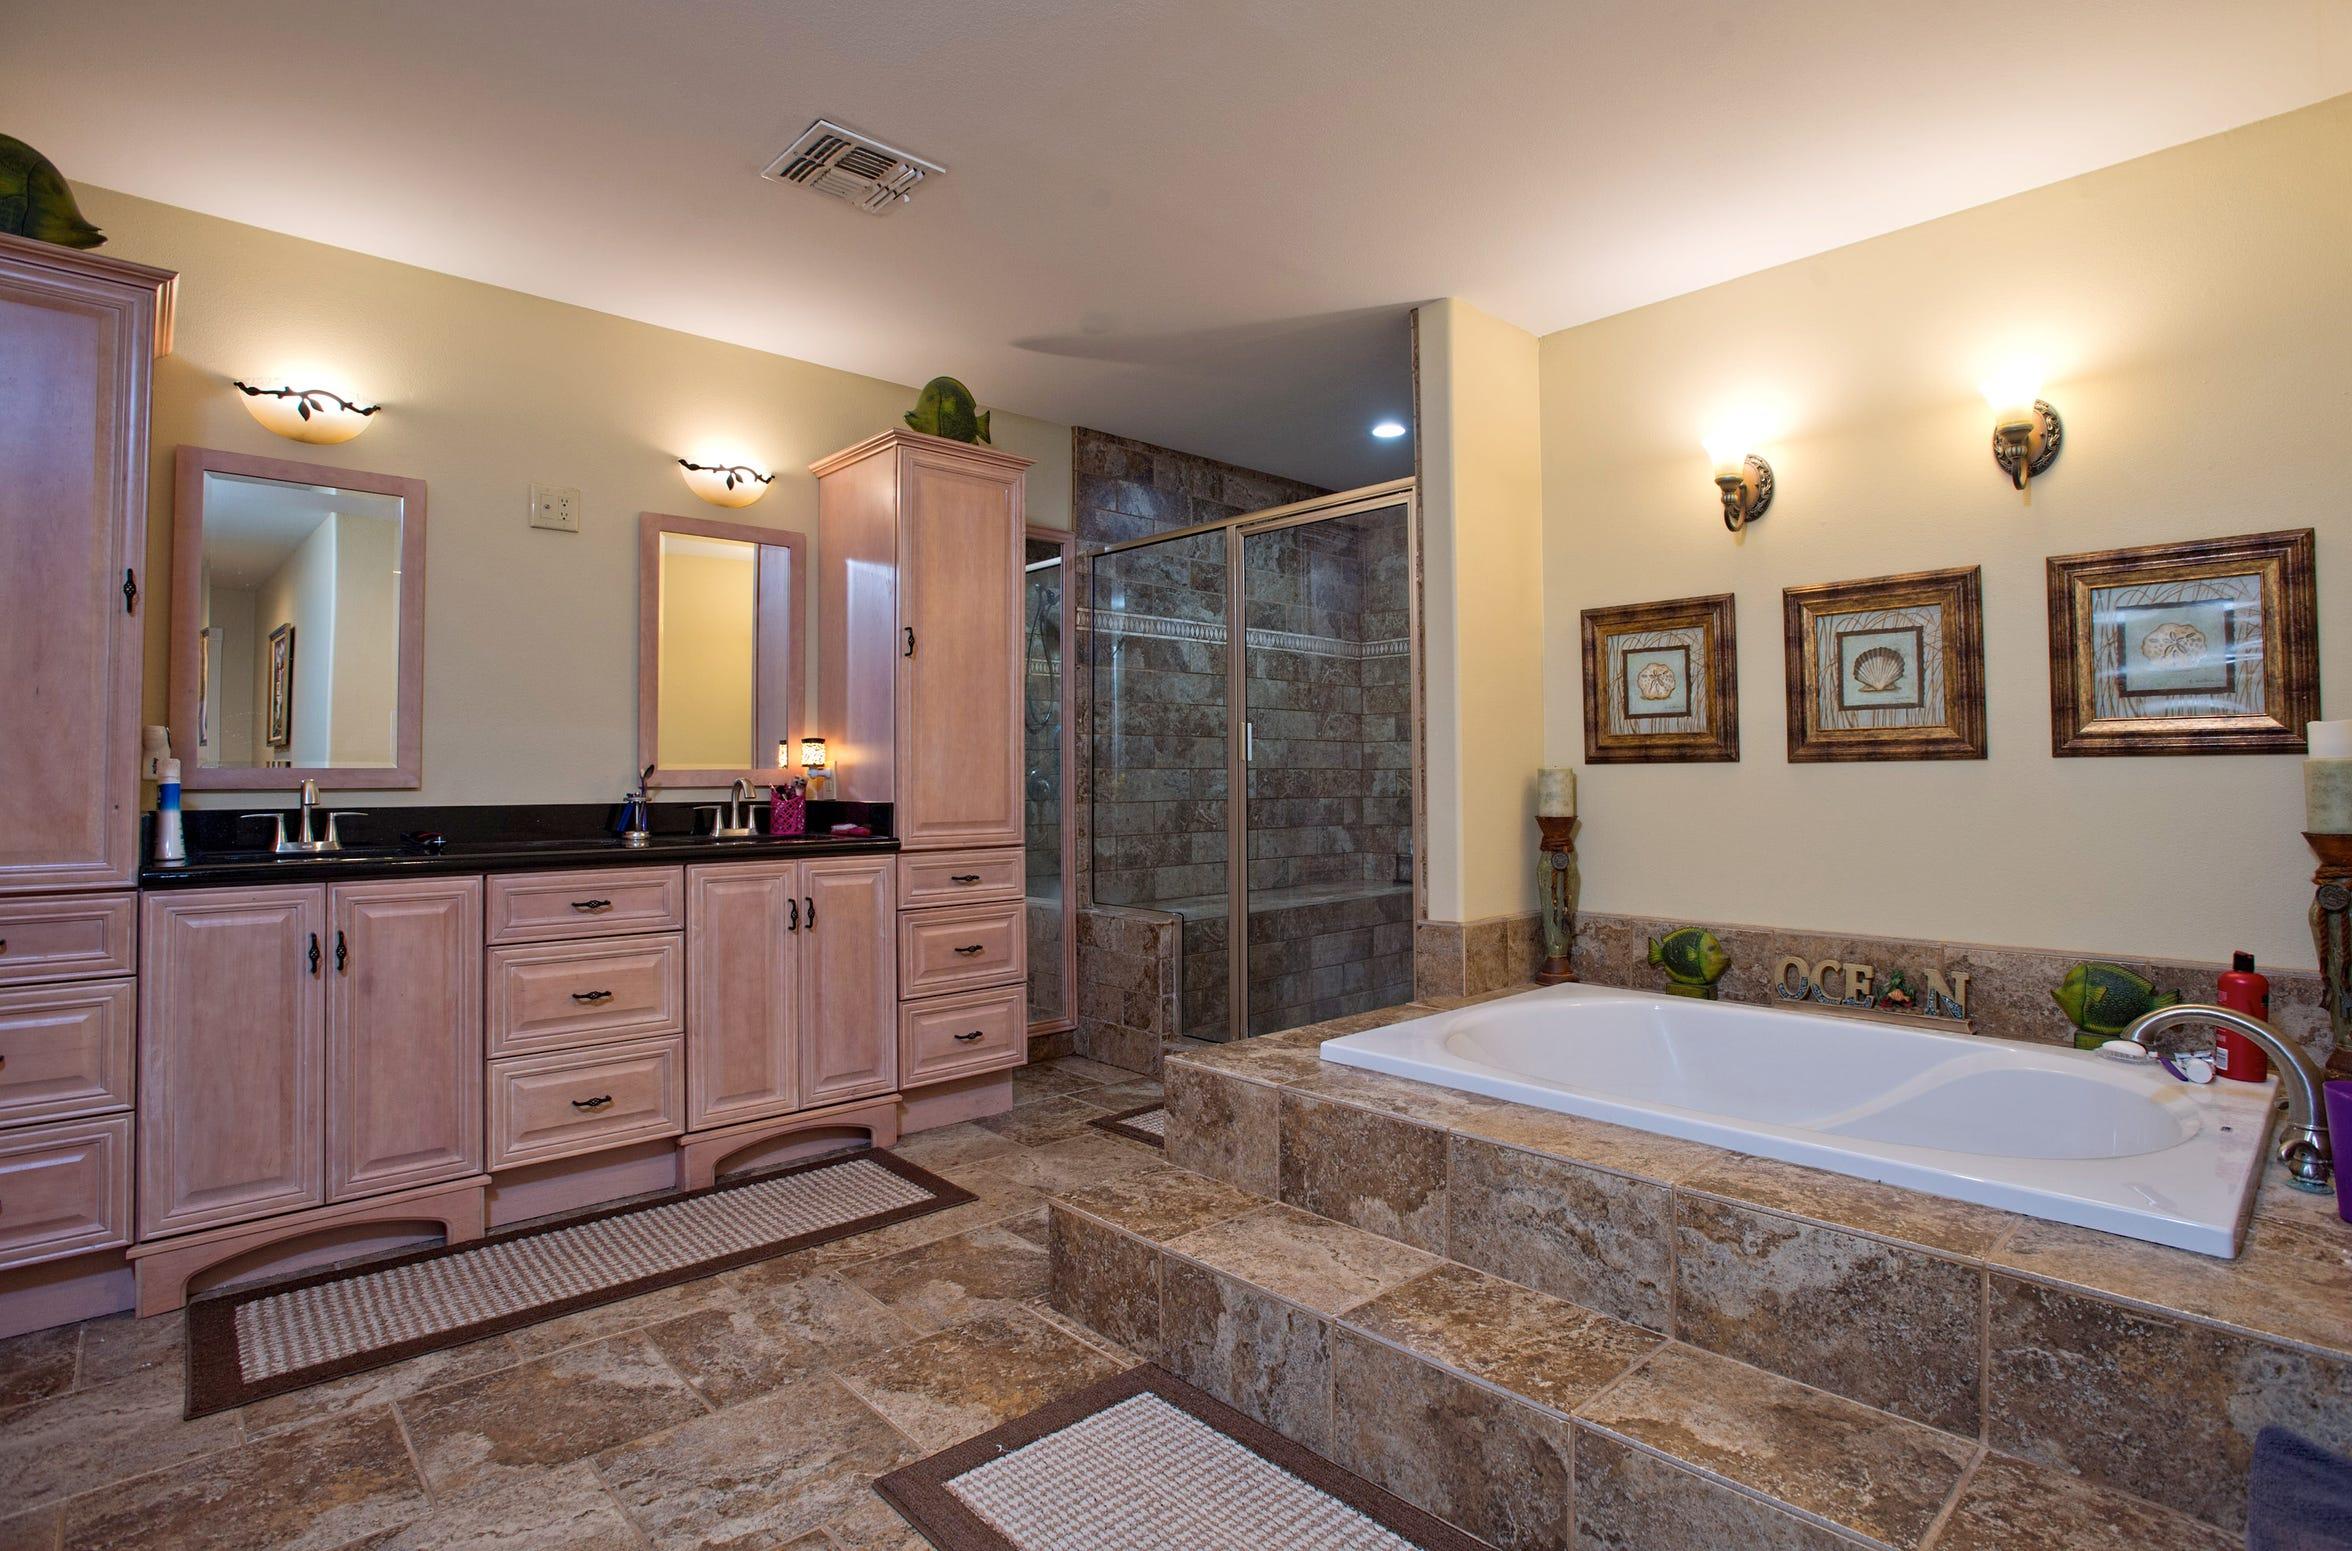 The luxurious and fully equipped tiled master bath features a walk in shower, soaking tub and generous cabinet space